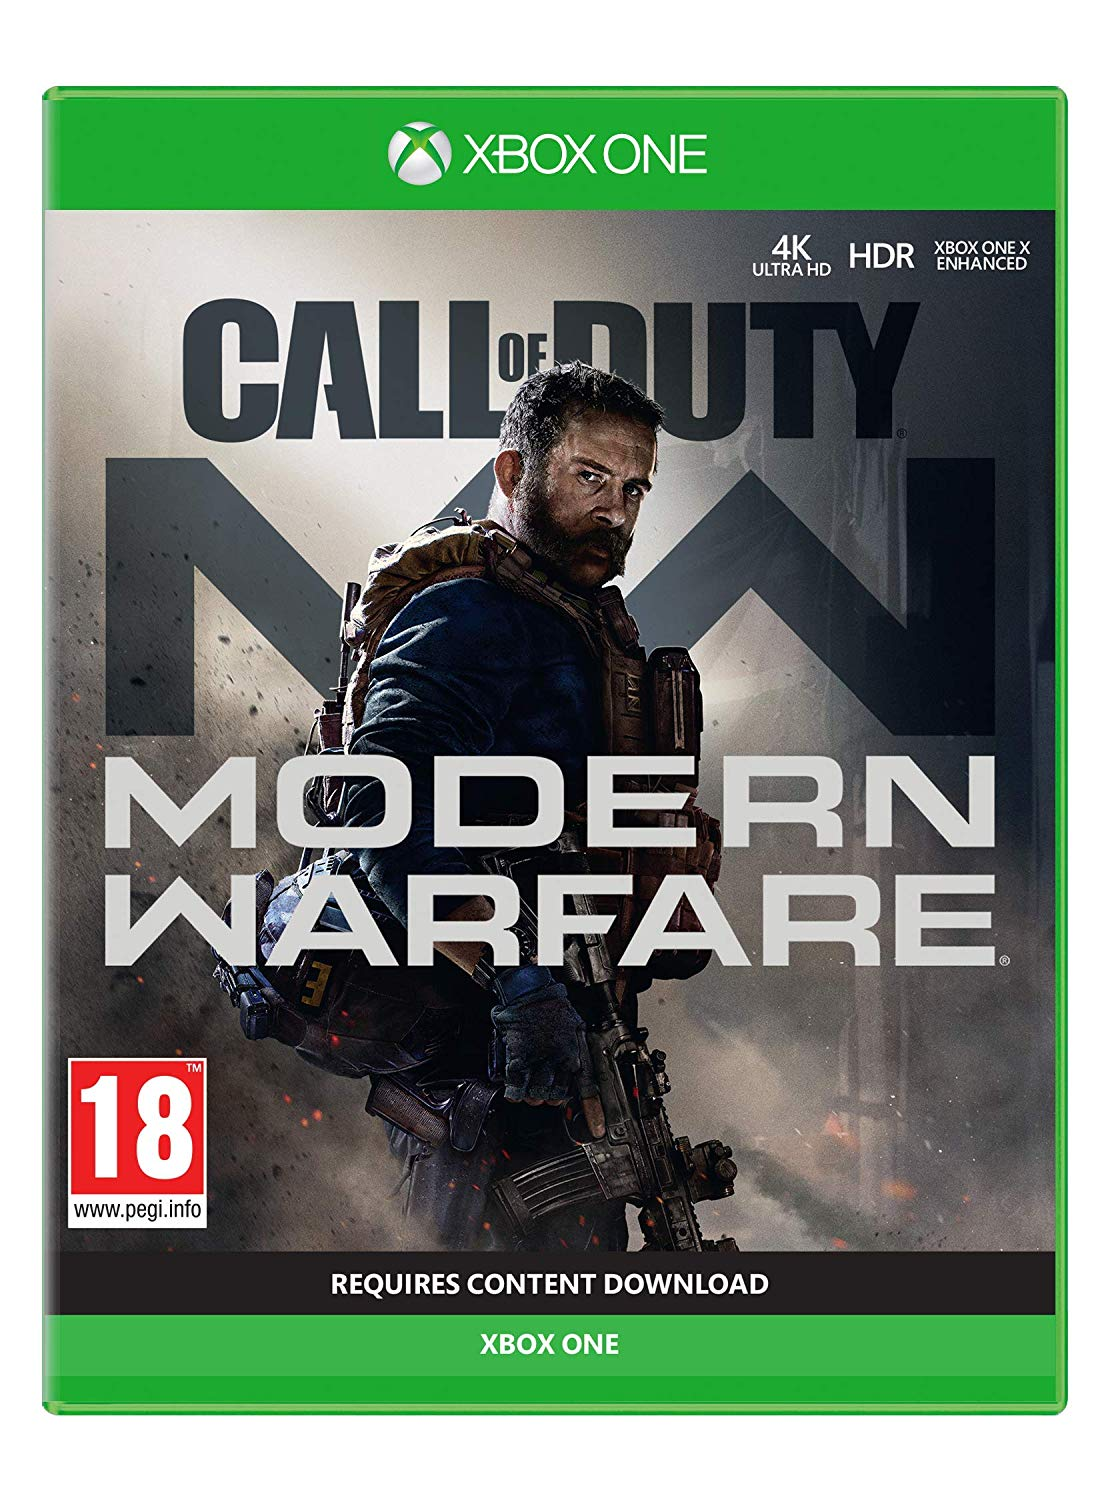 Call of Duty: Modern Warfare (PS4) [Games] OUT 22.11.19 PRE-ORDER NOW